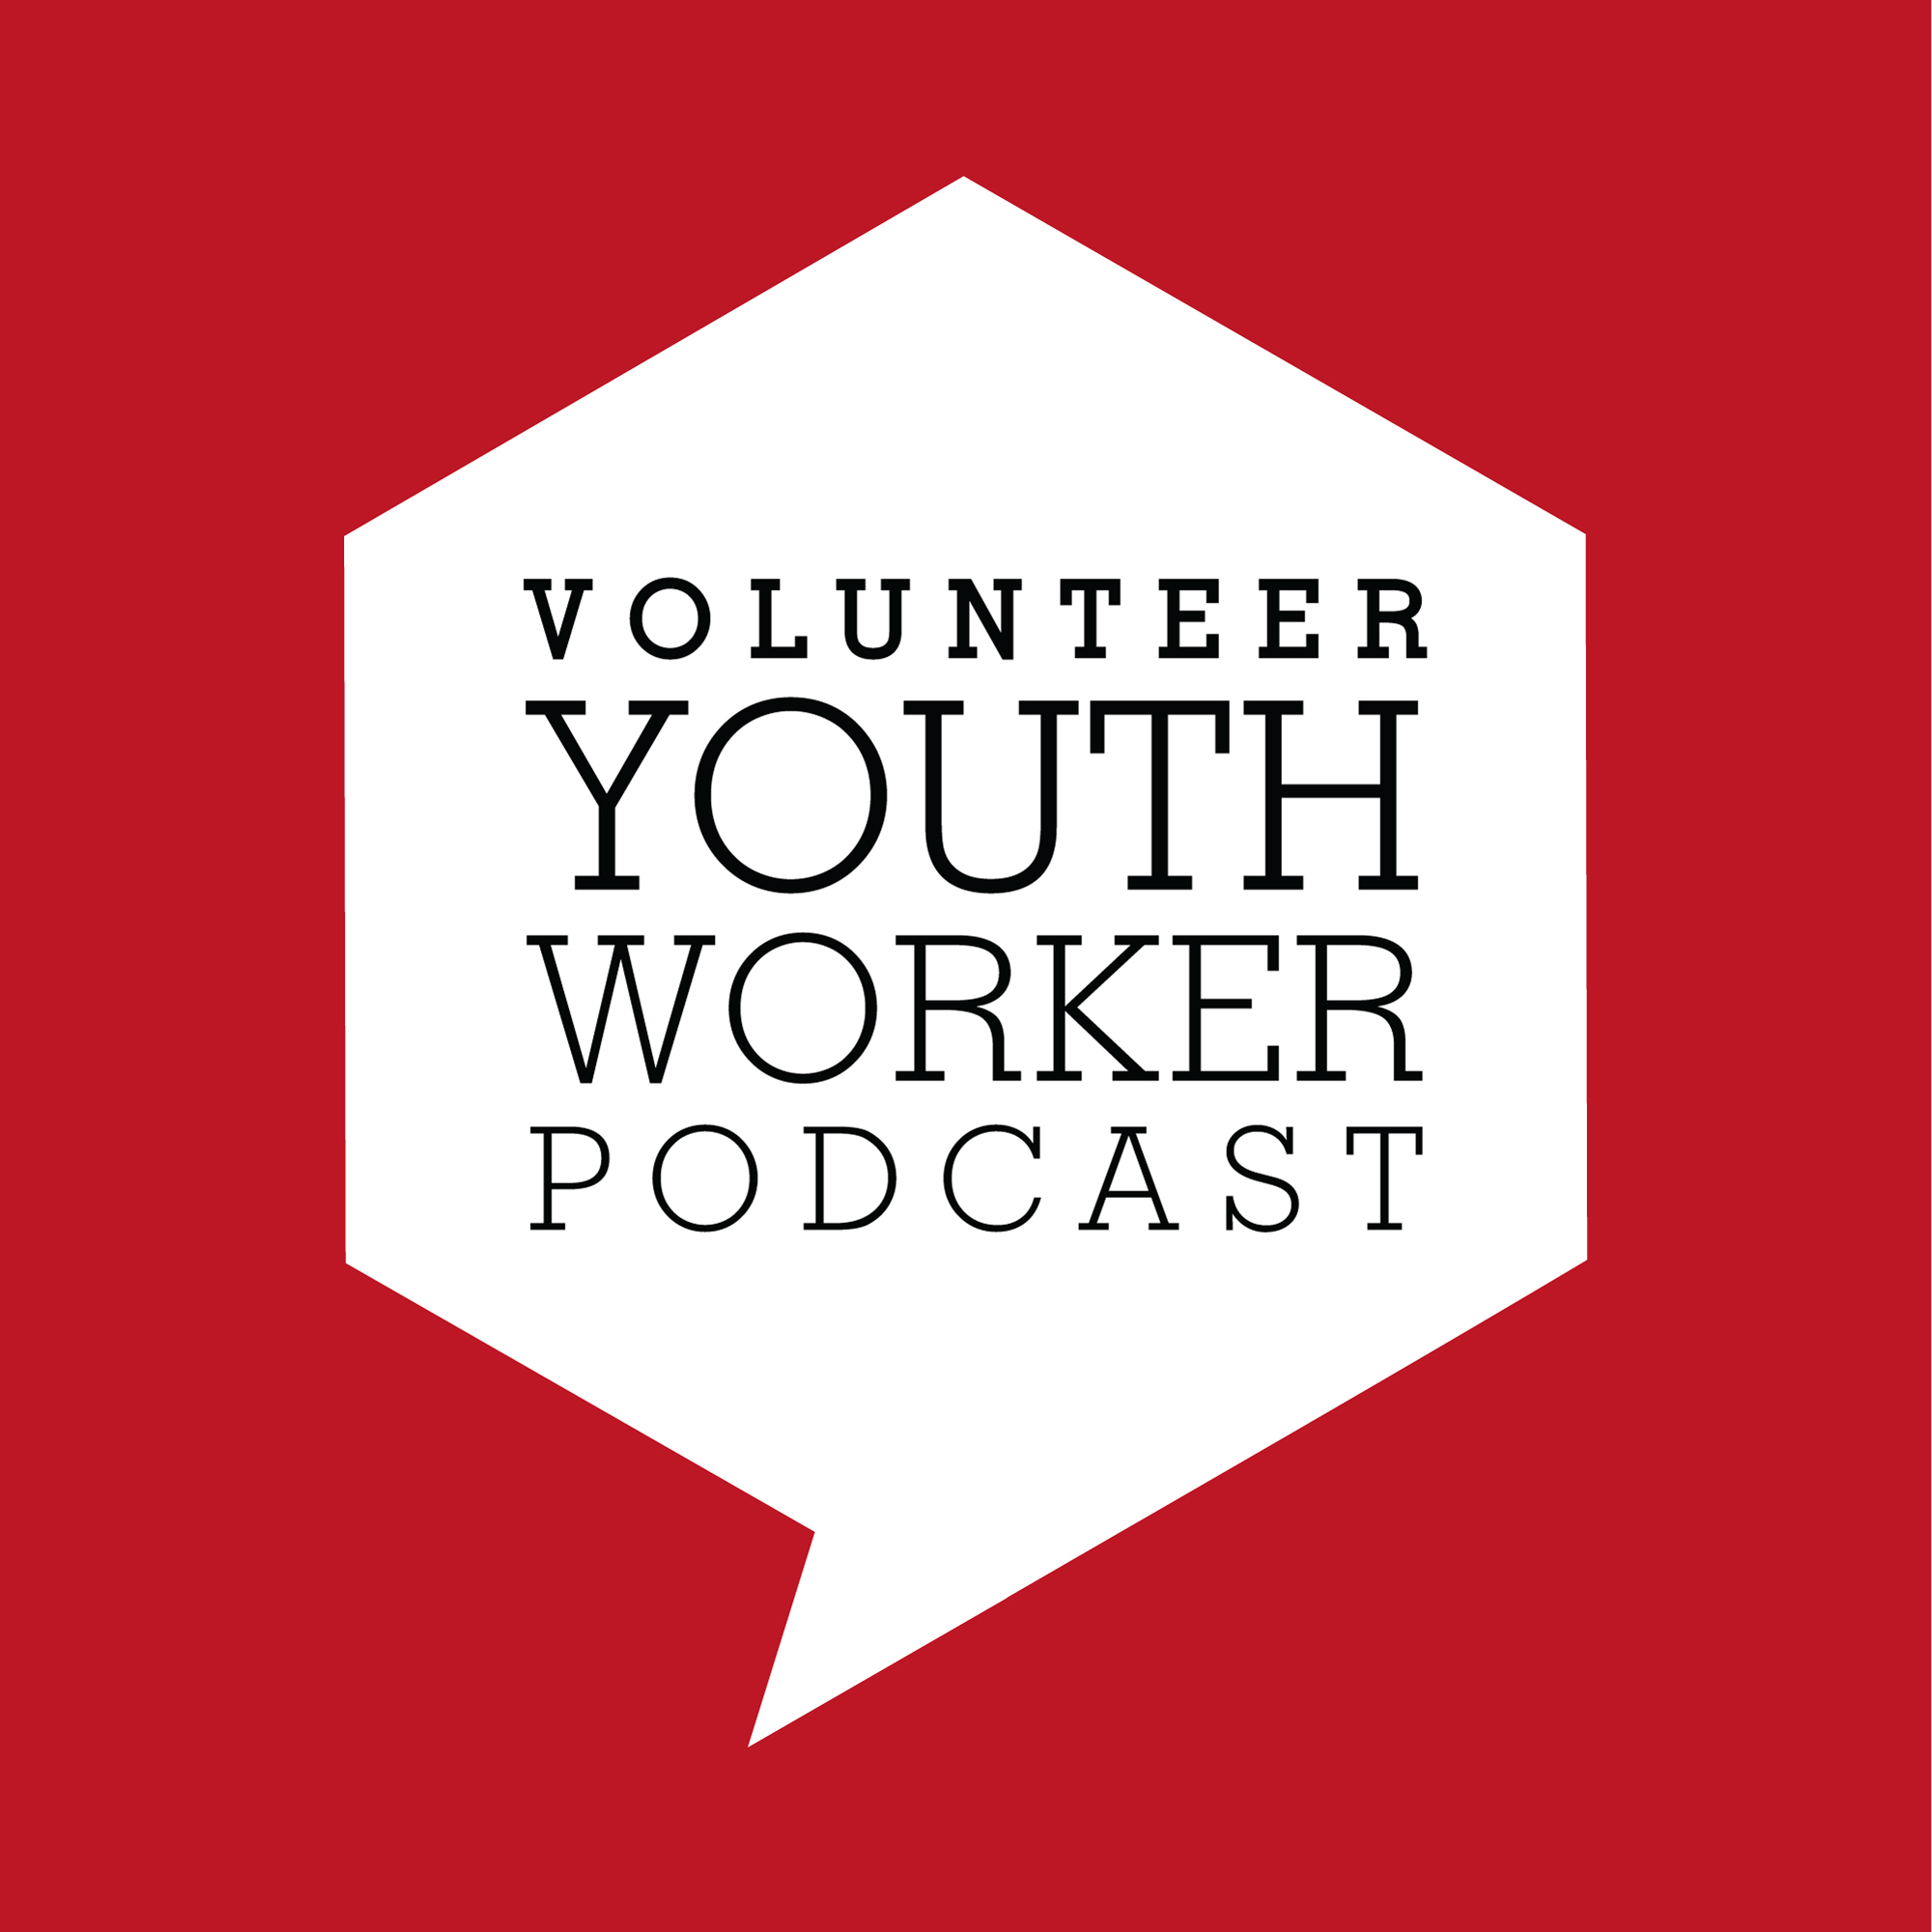 Volunteer Youth Worker Podcast show art